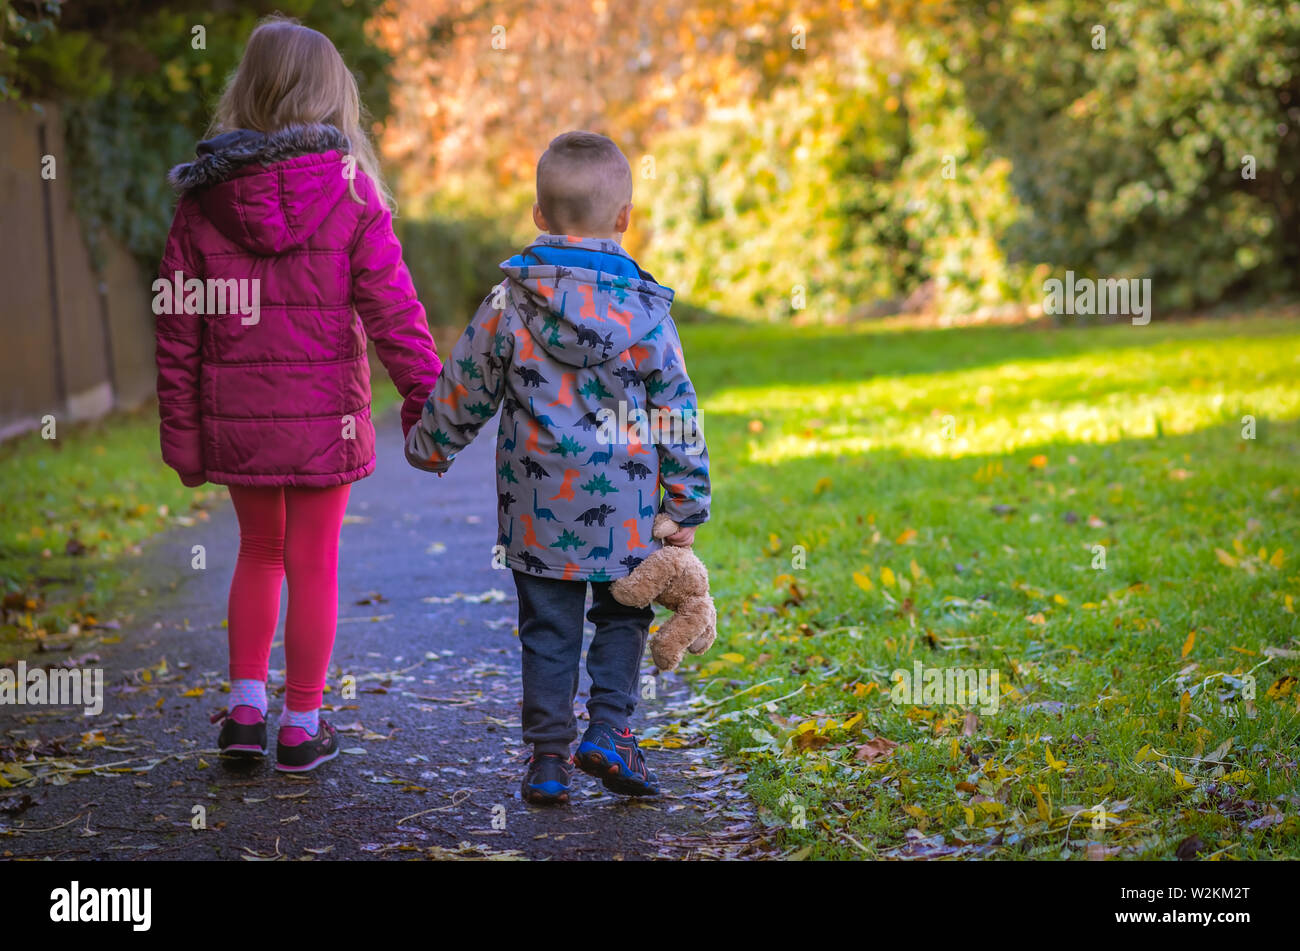 Boy holding hs favourite teddy bear soft toy holding hands with his sister and walking together on a path in the countryside in autumn Stock Photo